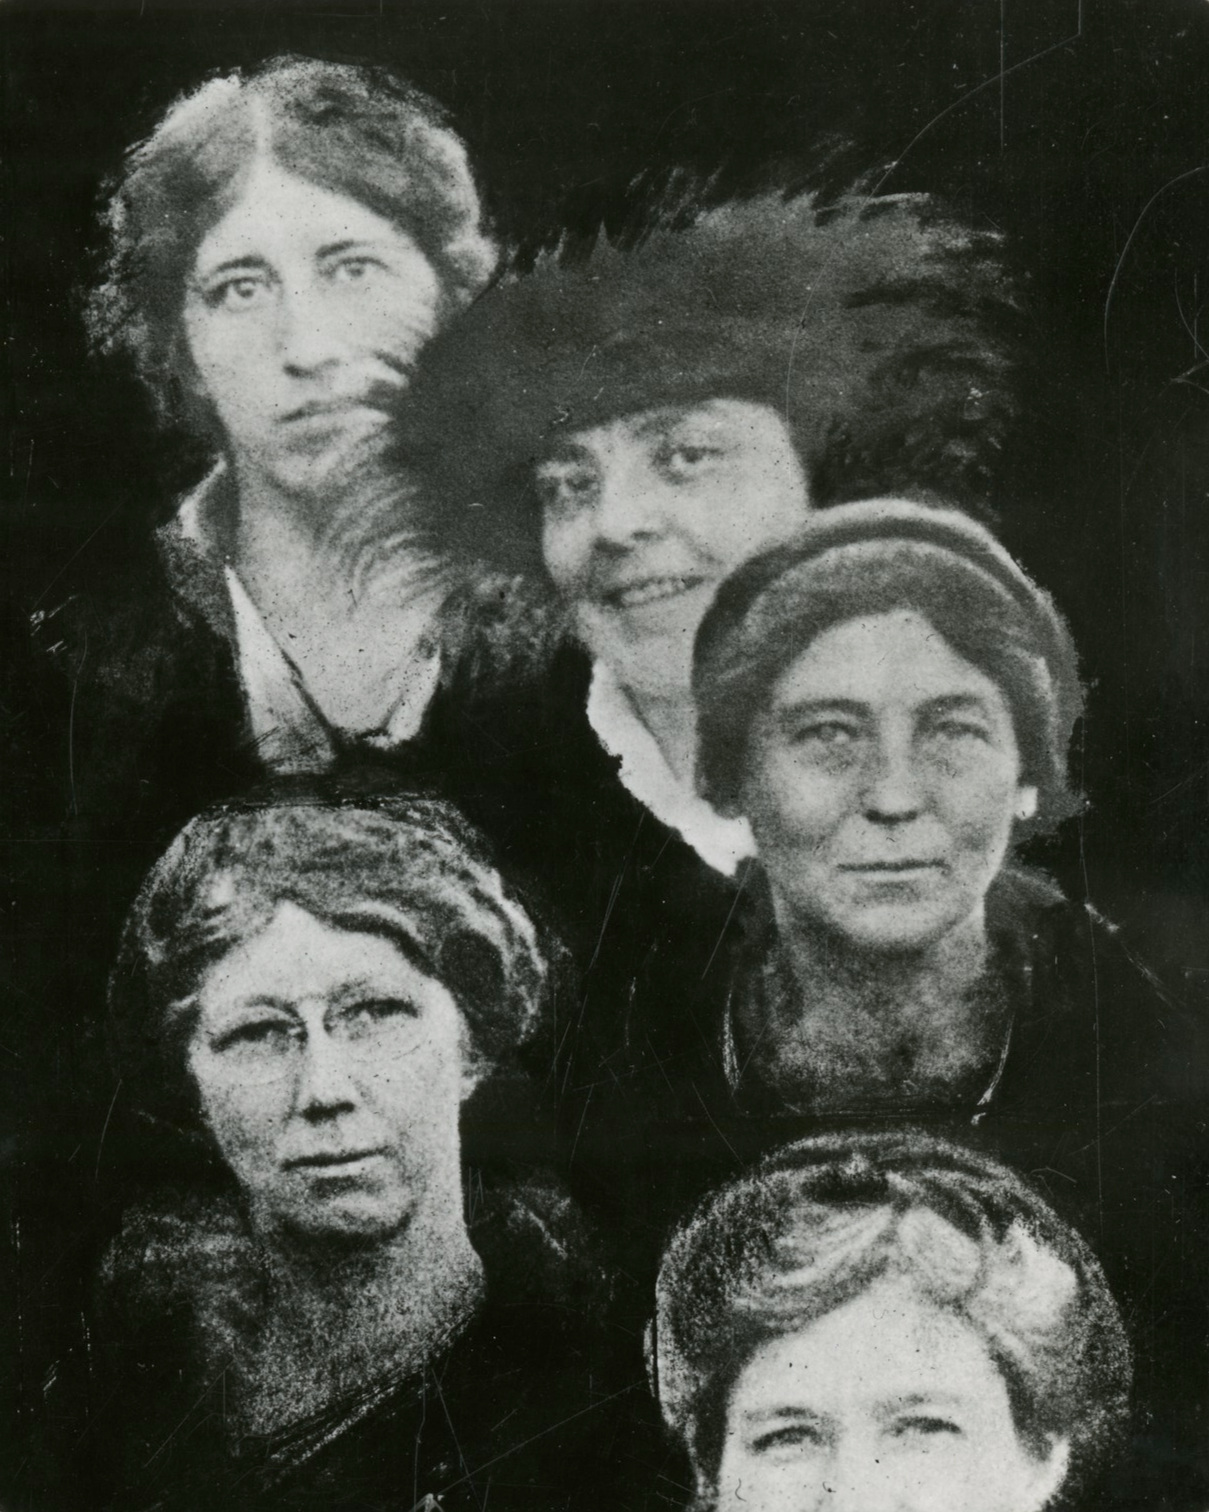 %28clockwise_from_left%29_Agnes_J._Quirk%2C_Helen_Morgenthau_Fox_%281884-1974%29%2C_Florence_Hedges_%281878-1956%29%2C_unidentified_woman%2C_and_Edna_H._Fawcett_%28b._1879%29_%285494540142%29.jpg